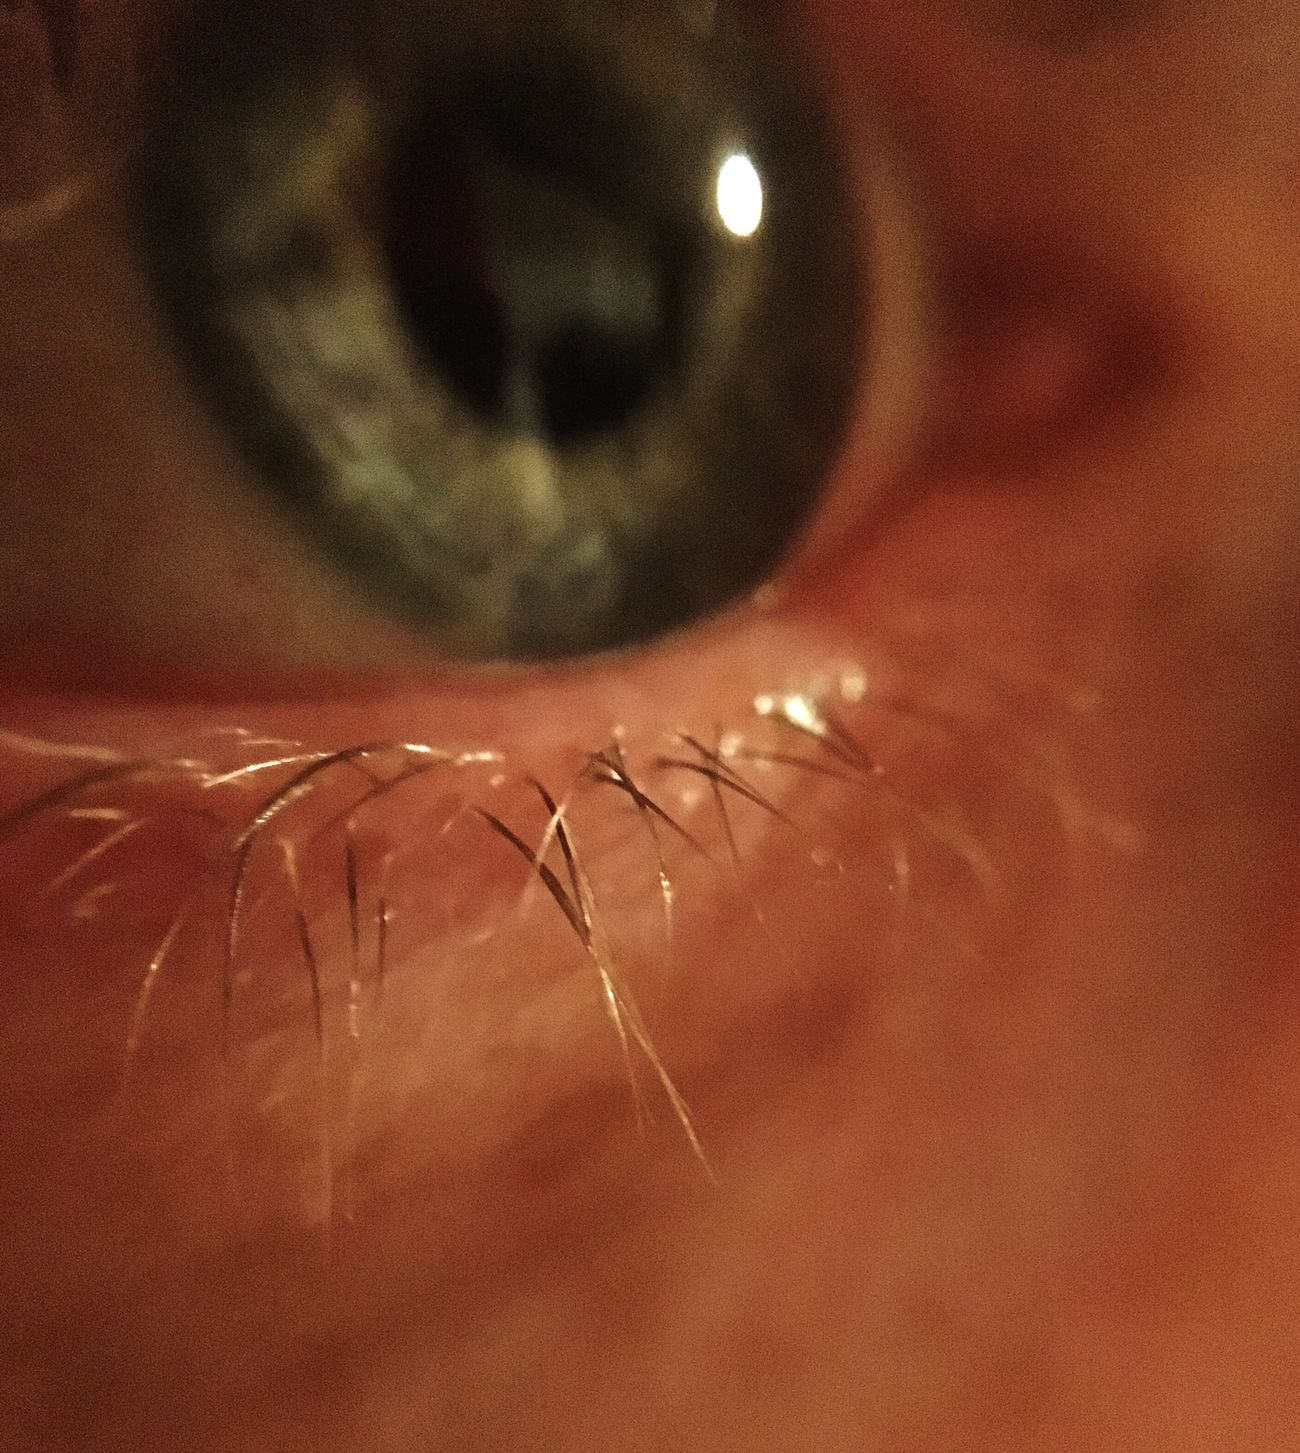 Maximum Closeness Eye Blue Eyes Eyelash Eyelashes Close-up Small Detail Human Skin Human Body Part Eyesight Skin One Person Indoors  Human Face Human Eye